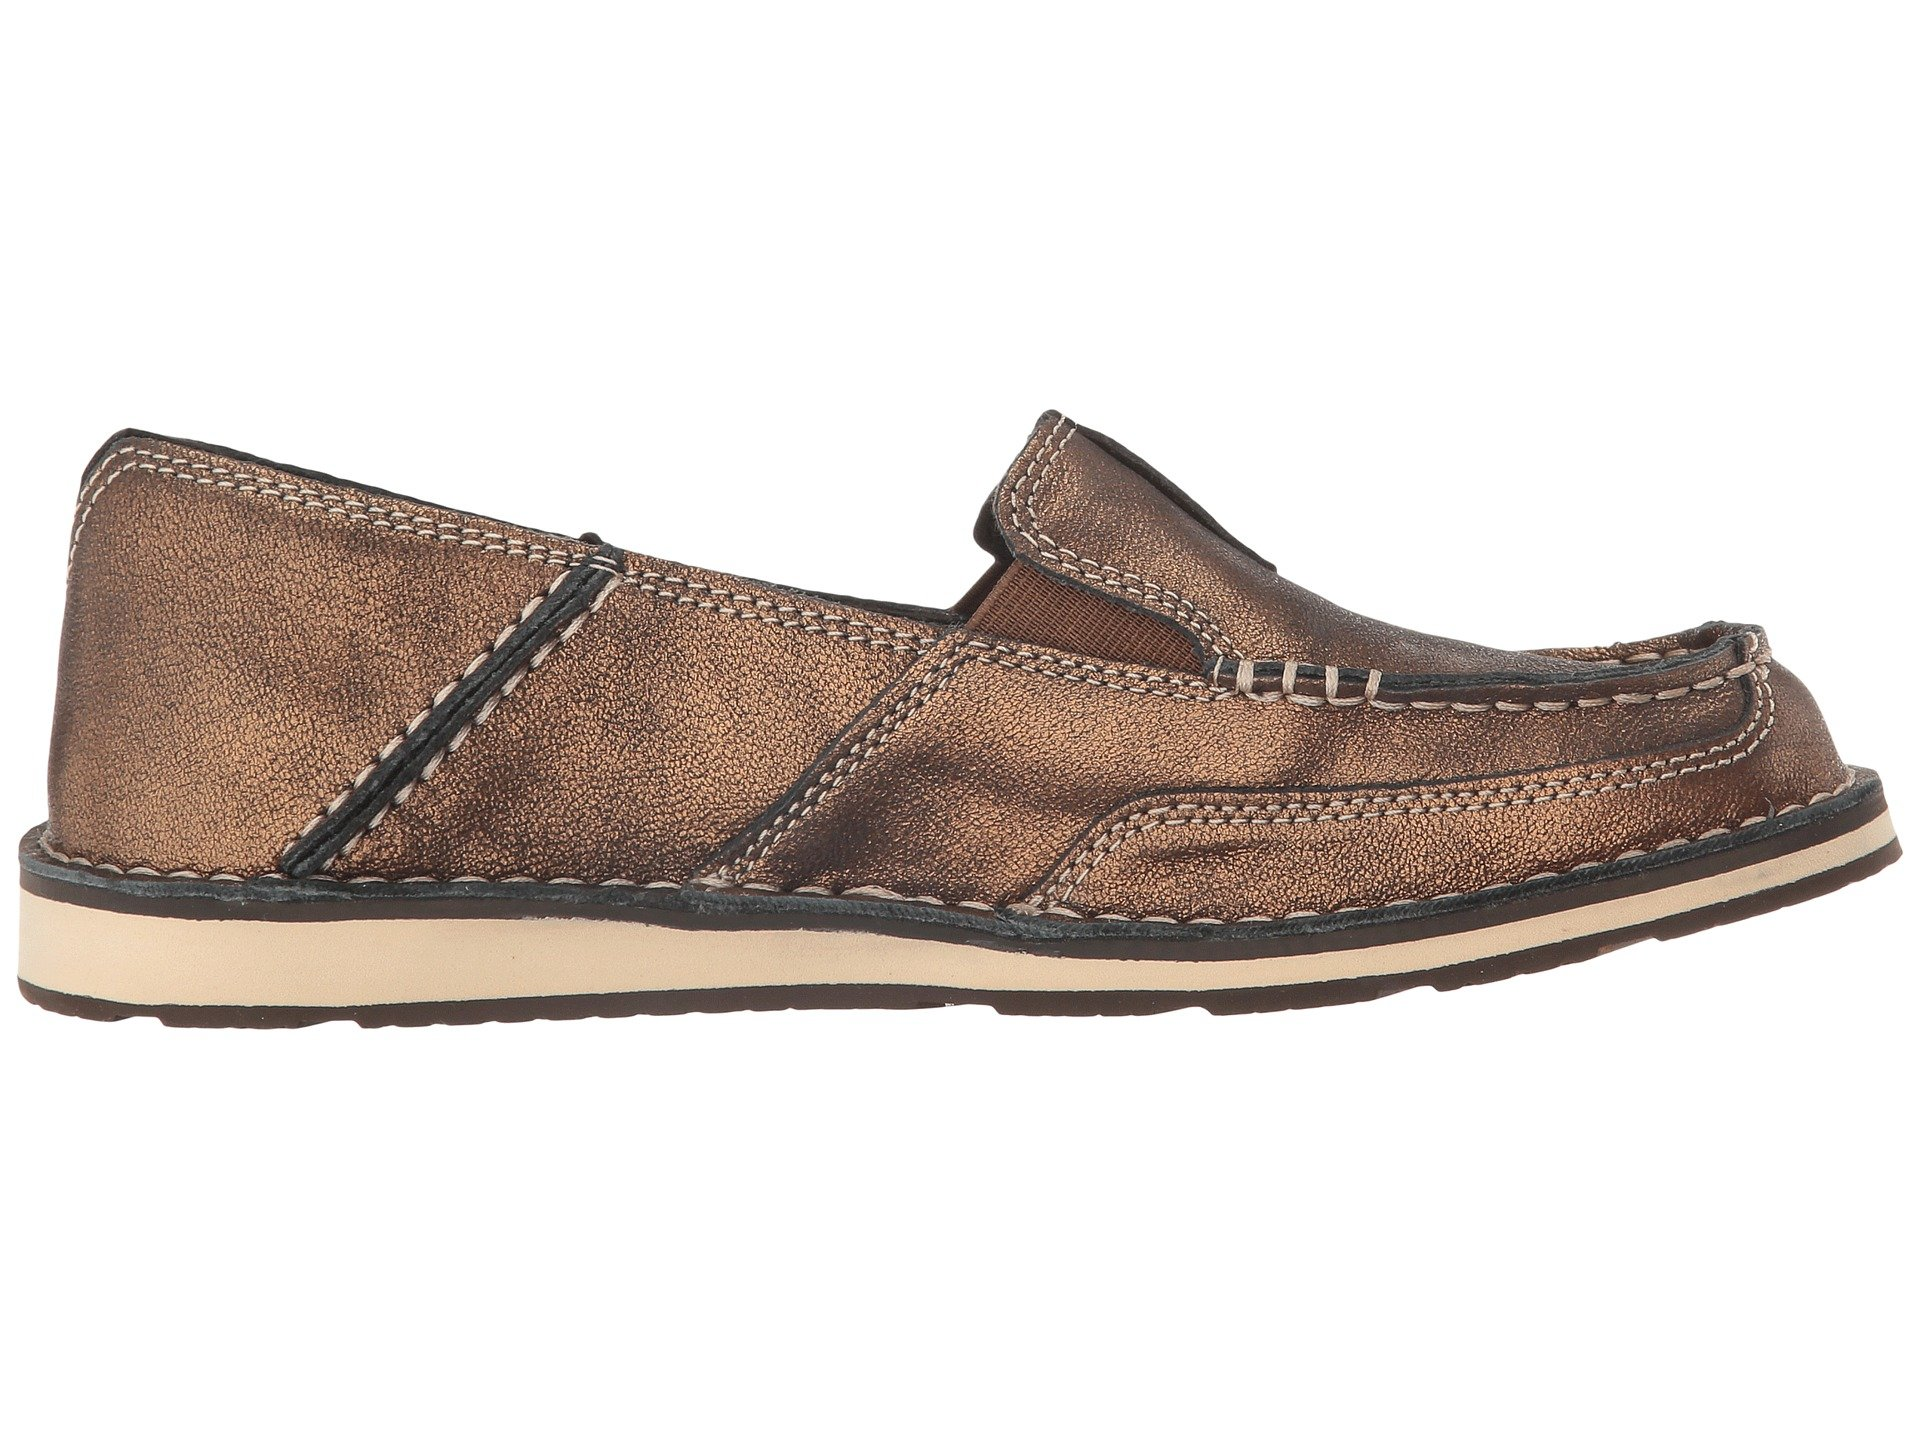 Cruiser Cruiser Ariat Ariat Bronze Metallic Bronze Cruiser Metallic Metallic Bronze Metallic Ariat Cruiser Ariat Cruiser Ariat Bronze Cwqxn6gX